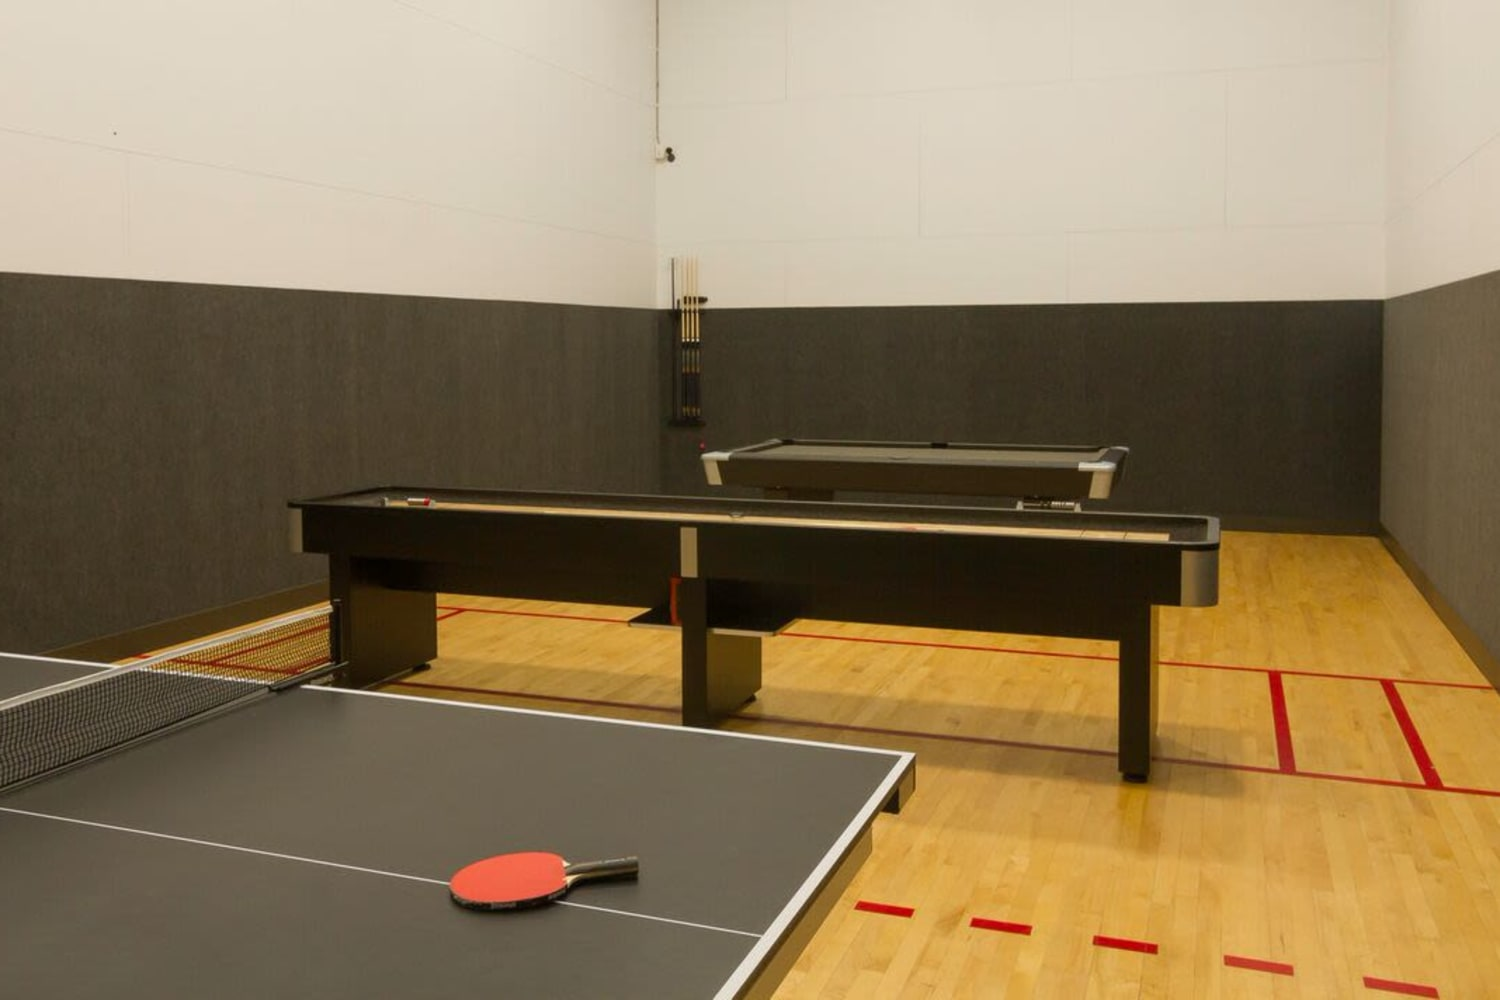 Ping-pong tables at Irving Schoolhouse Apartments in Salt Lake City, Utah